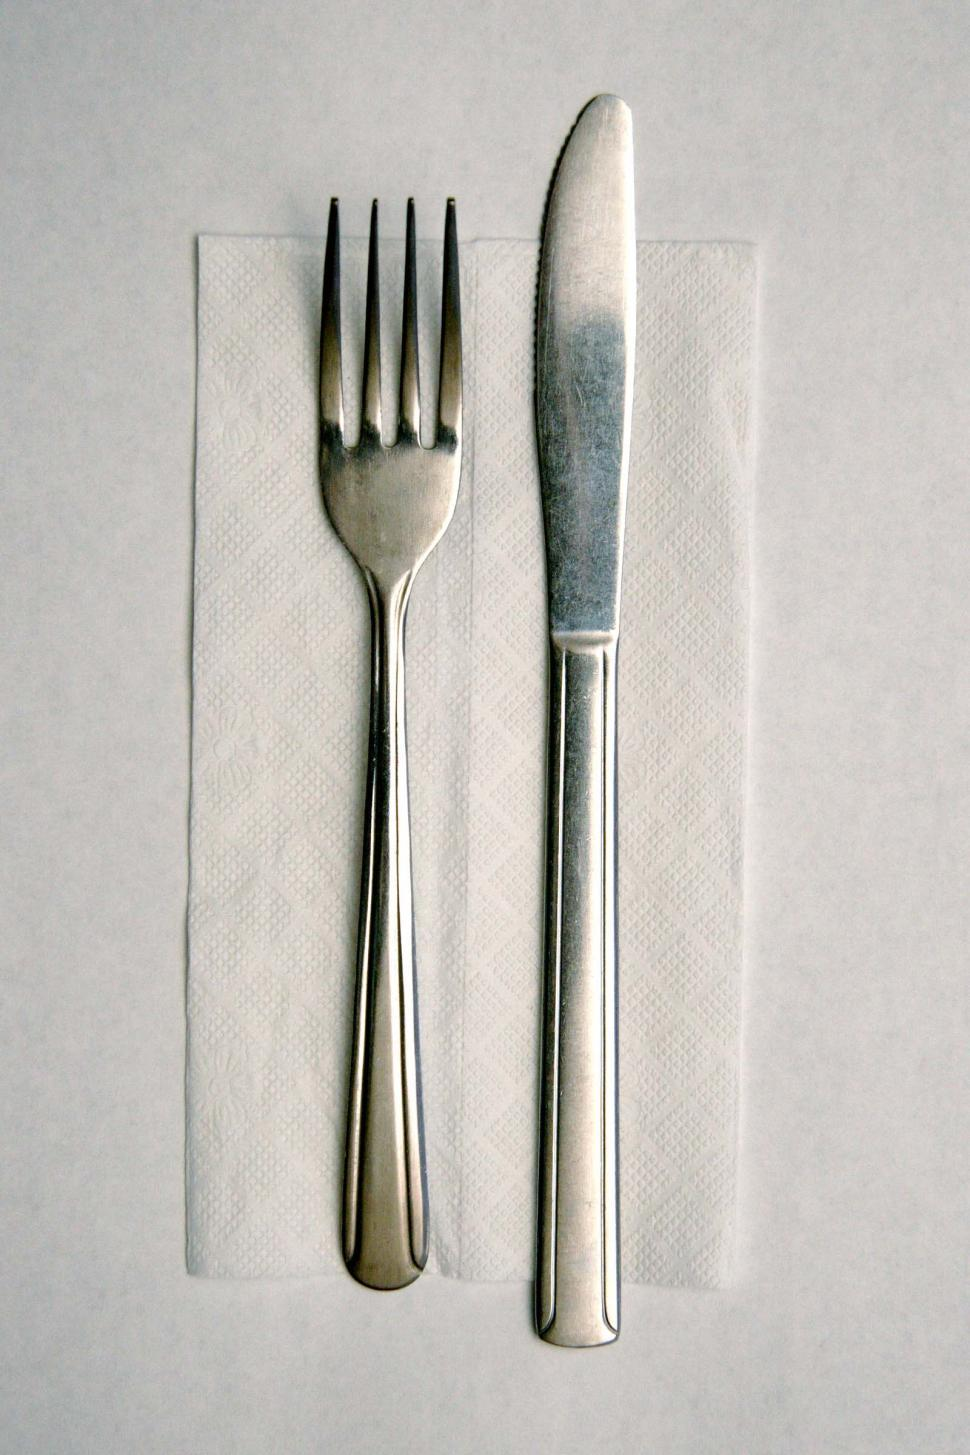 Download Free Stock HD Photo of Silverware setting Online